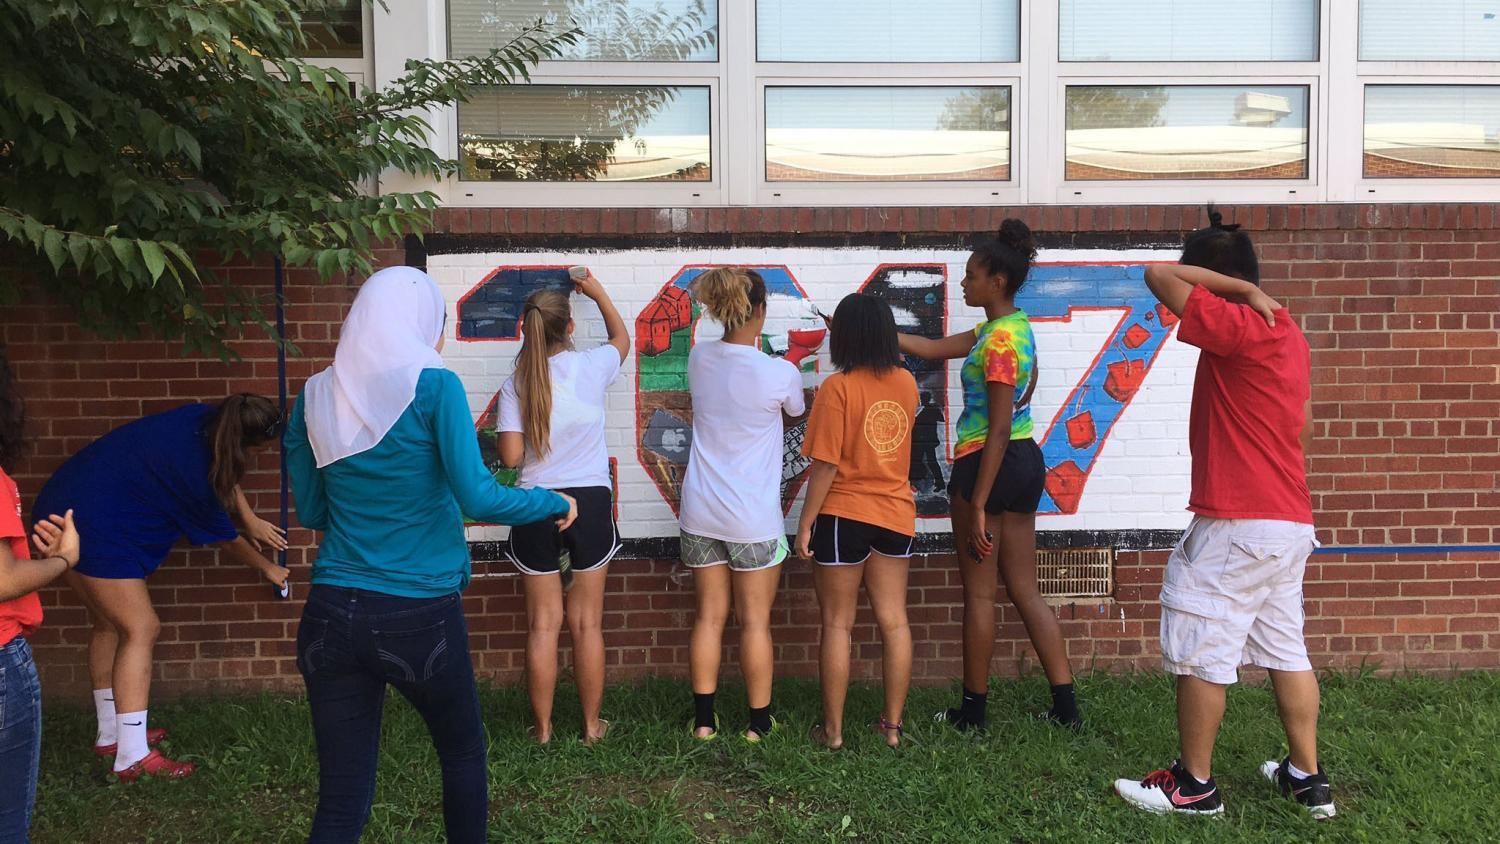 RIsing seniors gather to paint over last year's 2017 painting in the courtyard.